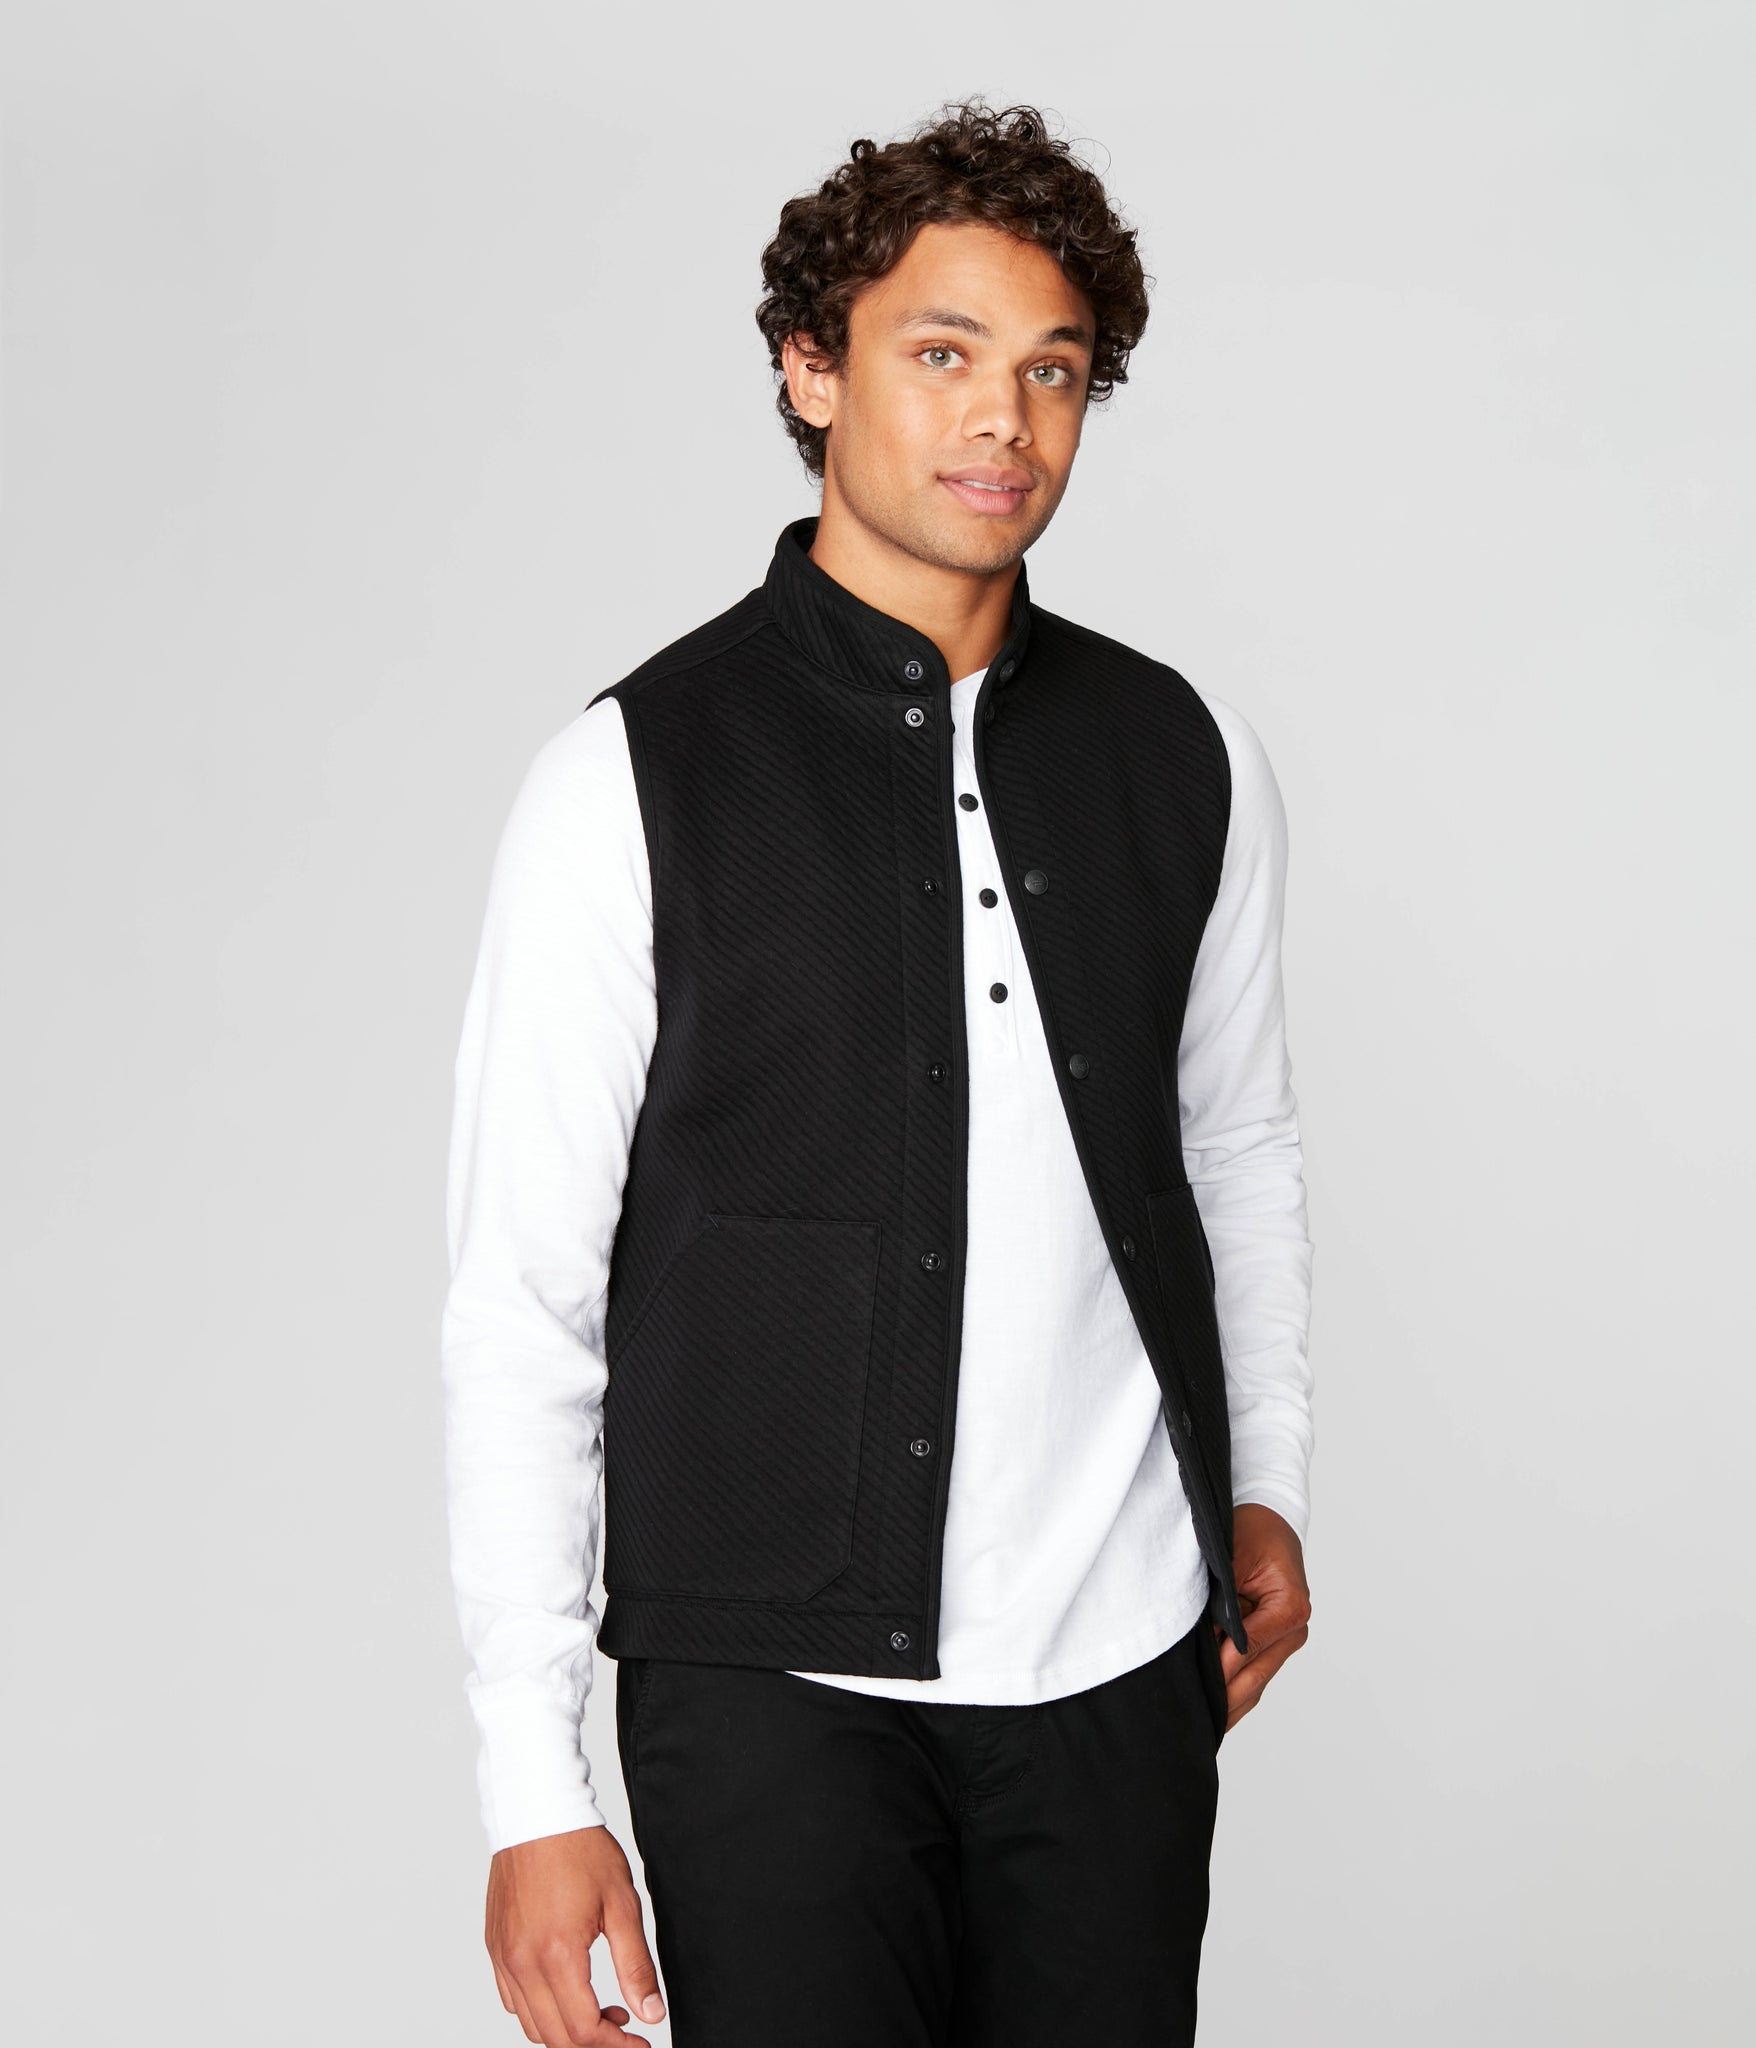 Fuji Shirt Jacket Vest in Twill Knit Jacquard - Black